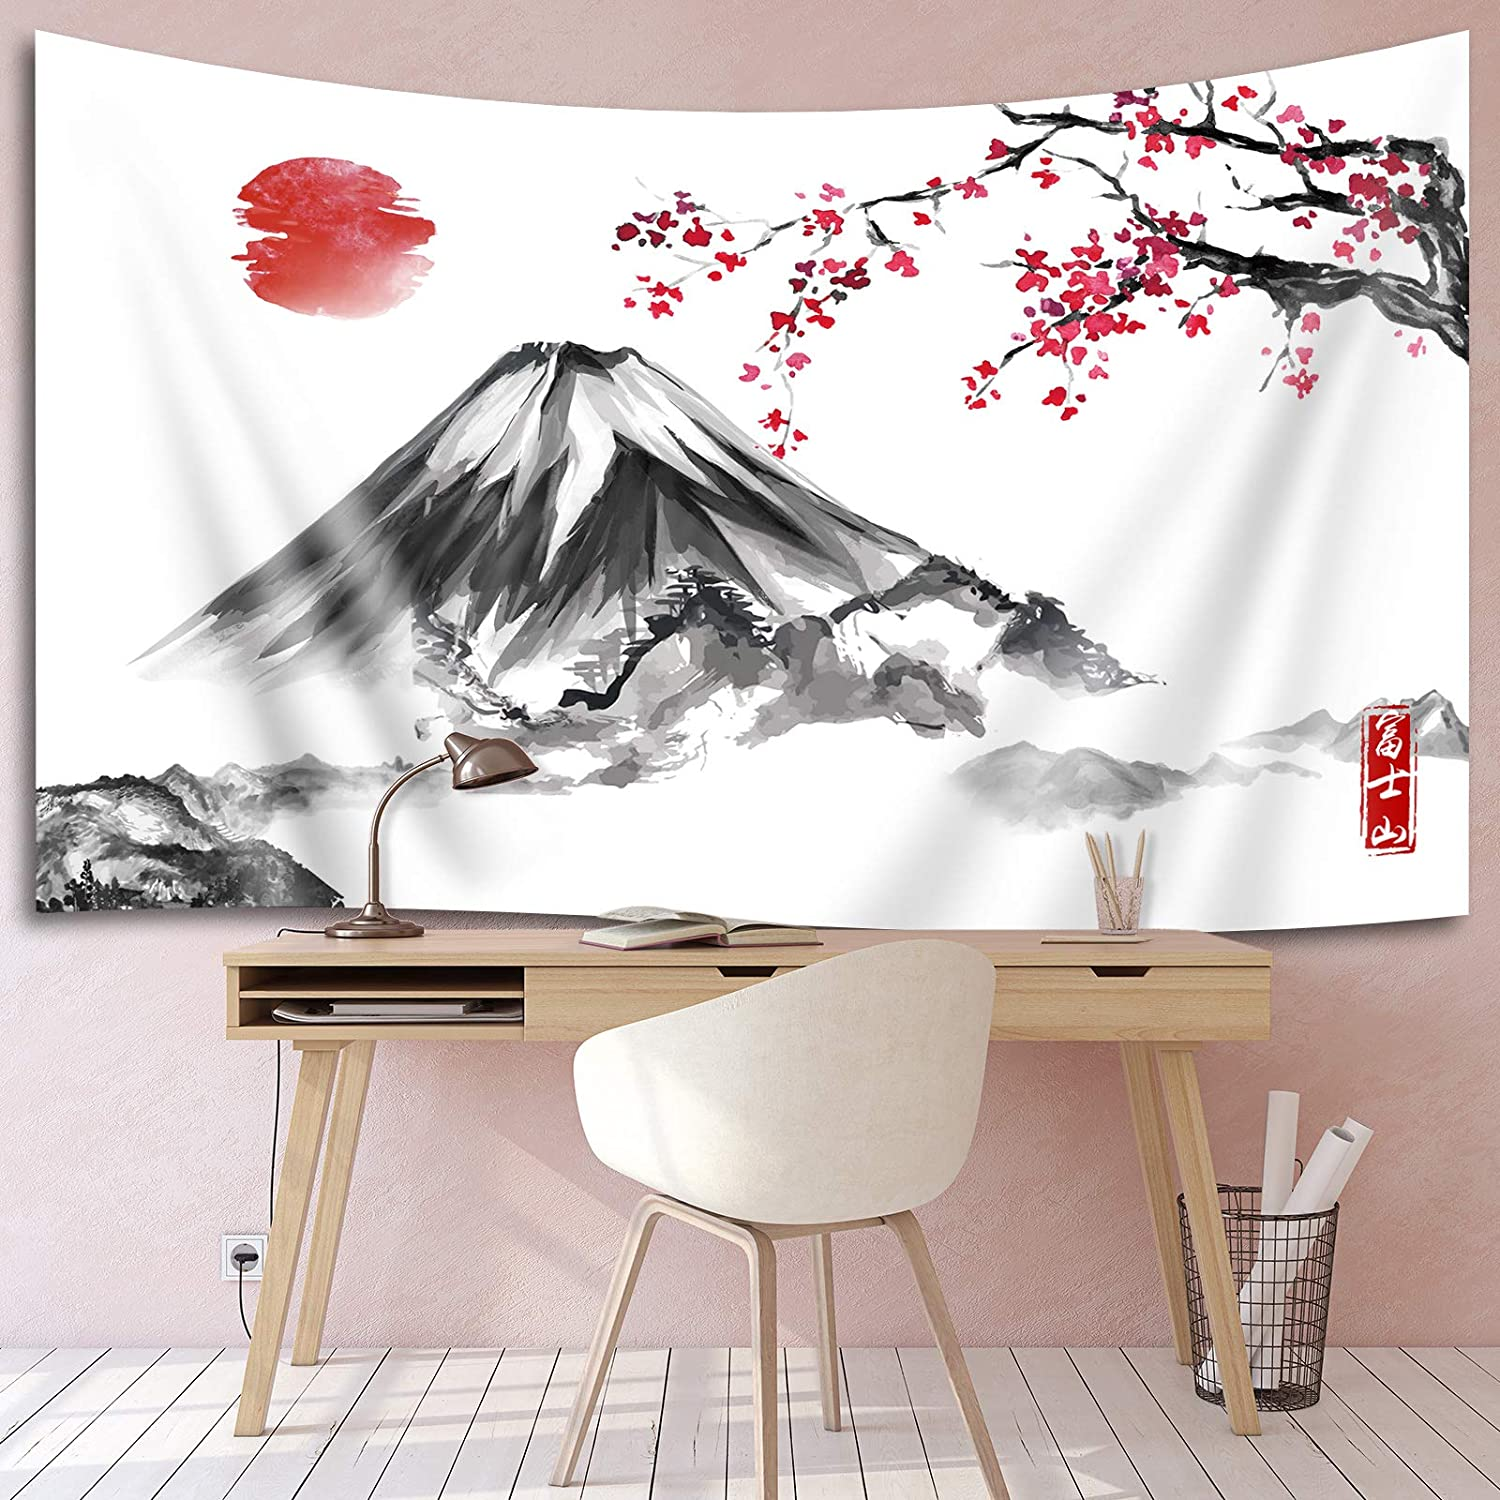 Japanese Wall Tapestry Japanese Decorations Fuji Mountain Sakura Sunset Backdrop Cherry Blossom Banner Hanging Background for Living Room Bedroom Dorm Decor Party Wedding Birthday 71 x 43.3 Inch